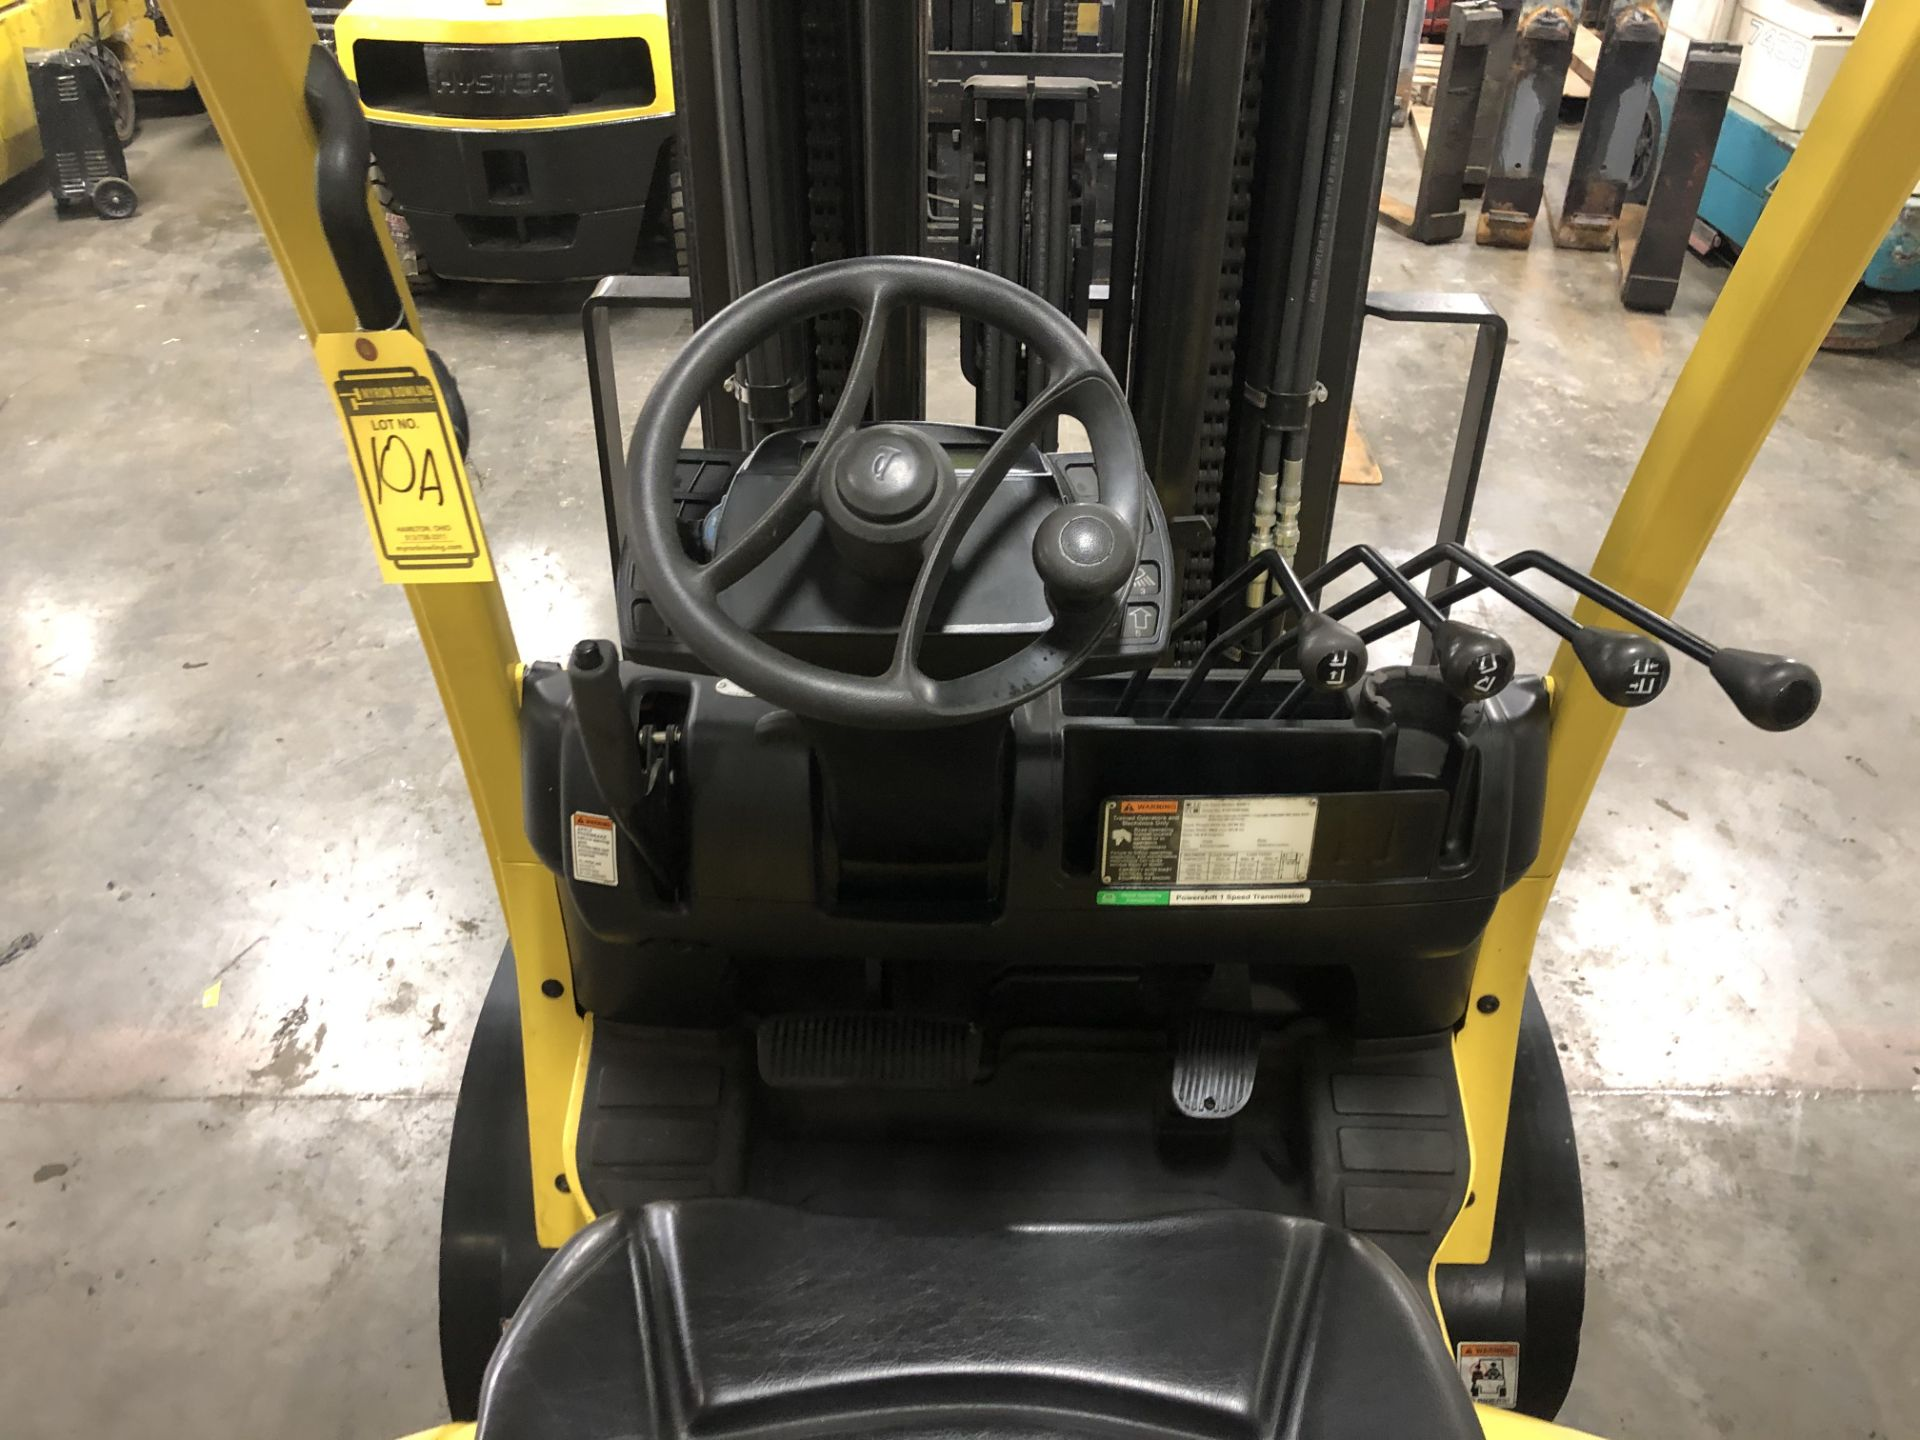 Lot 10A - 2013 HYSTER 5,000-lb., Mod: S50FT, LPG, Solid Tires, 4-Stage Mast, Sideshift, 3,820 Hours